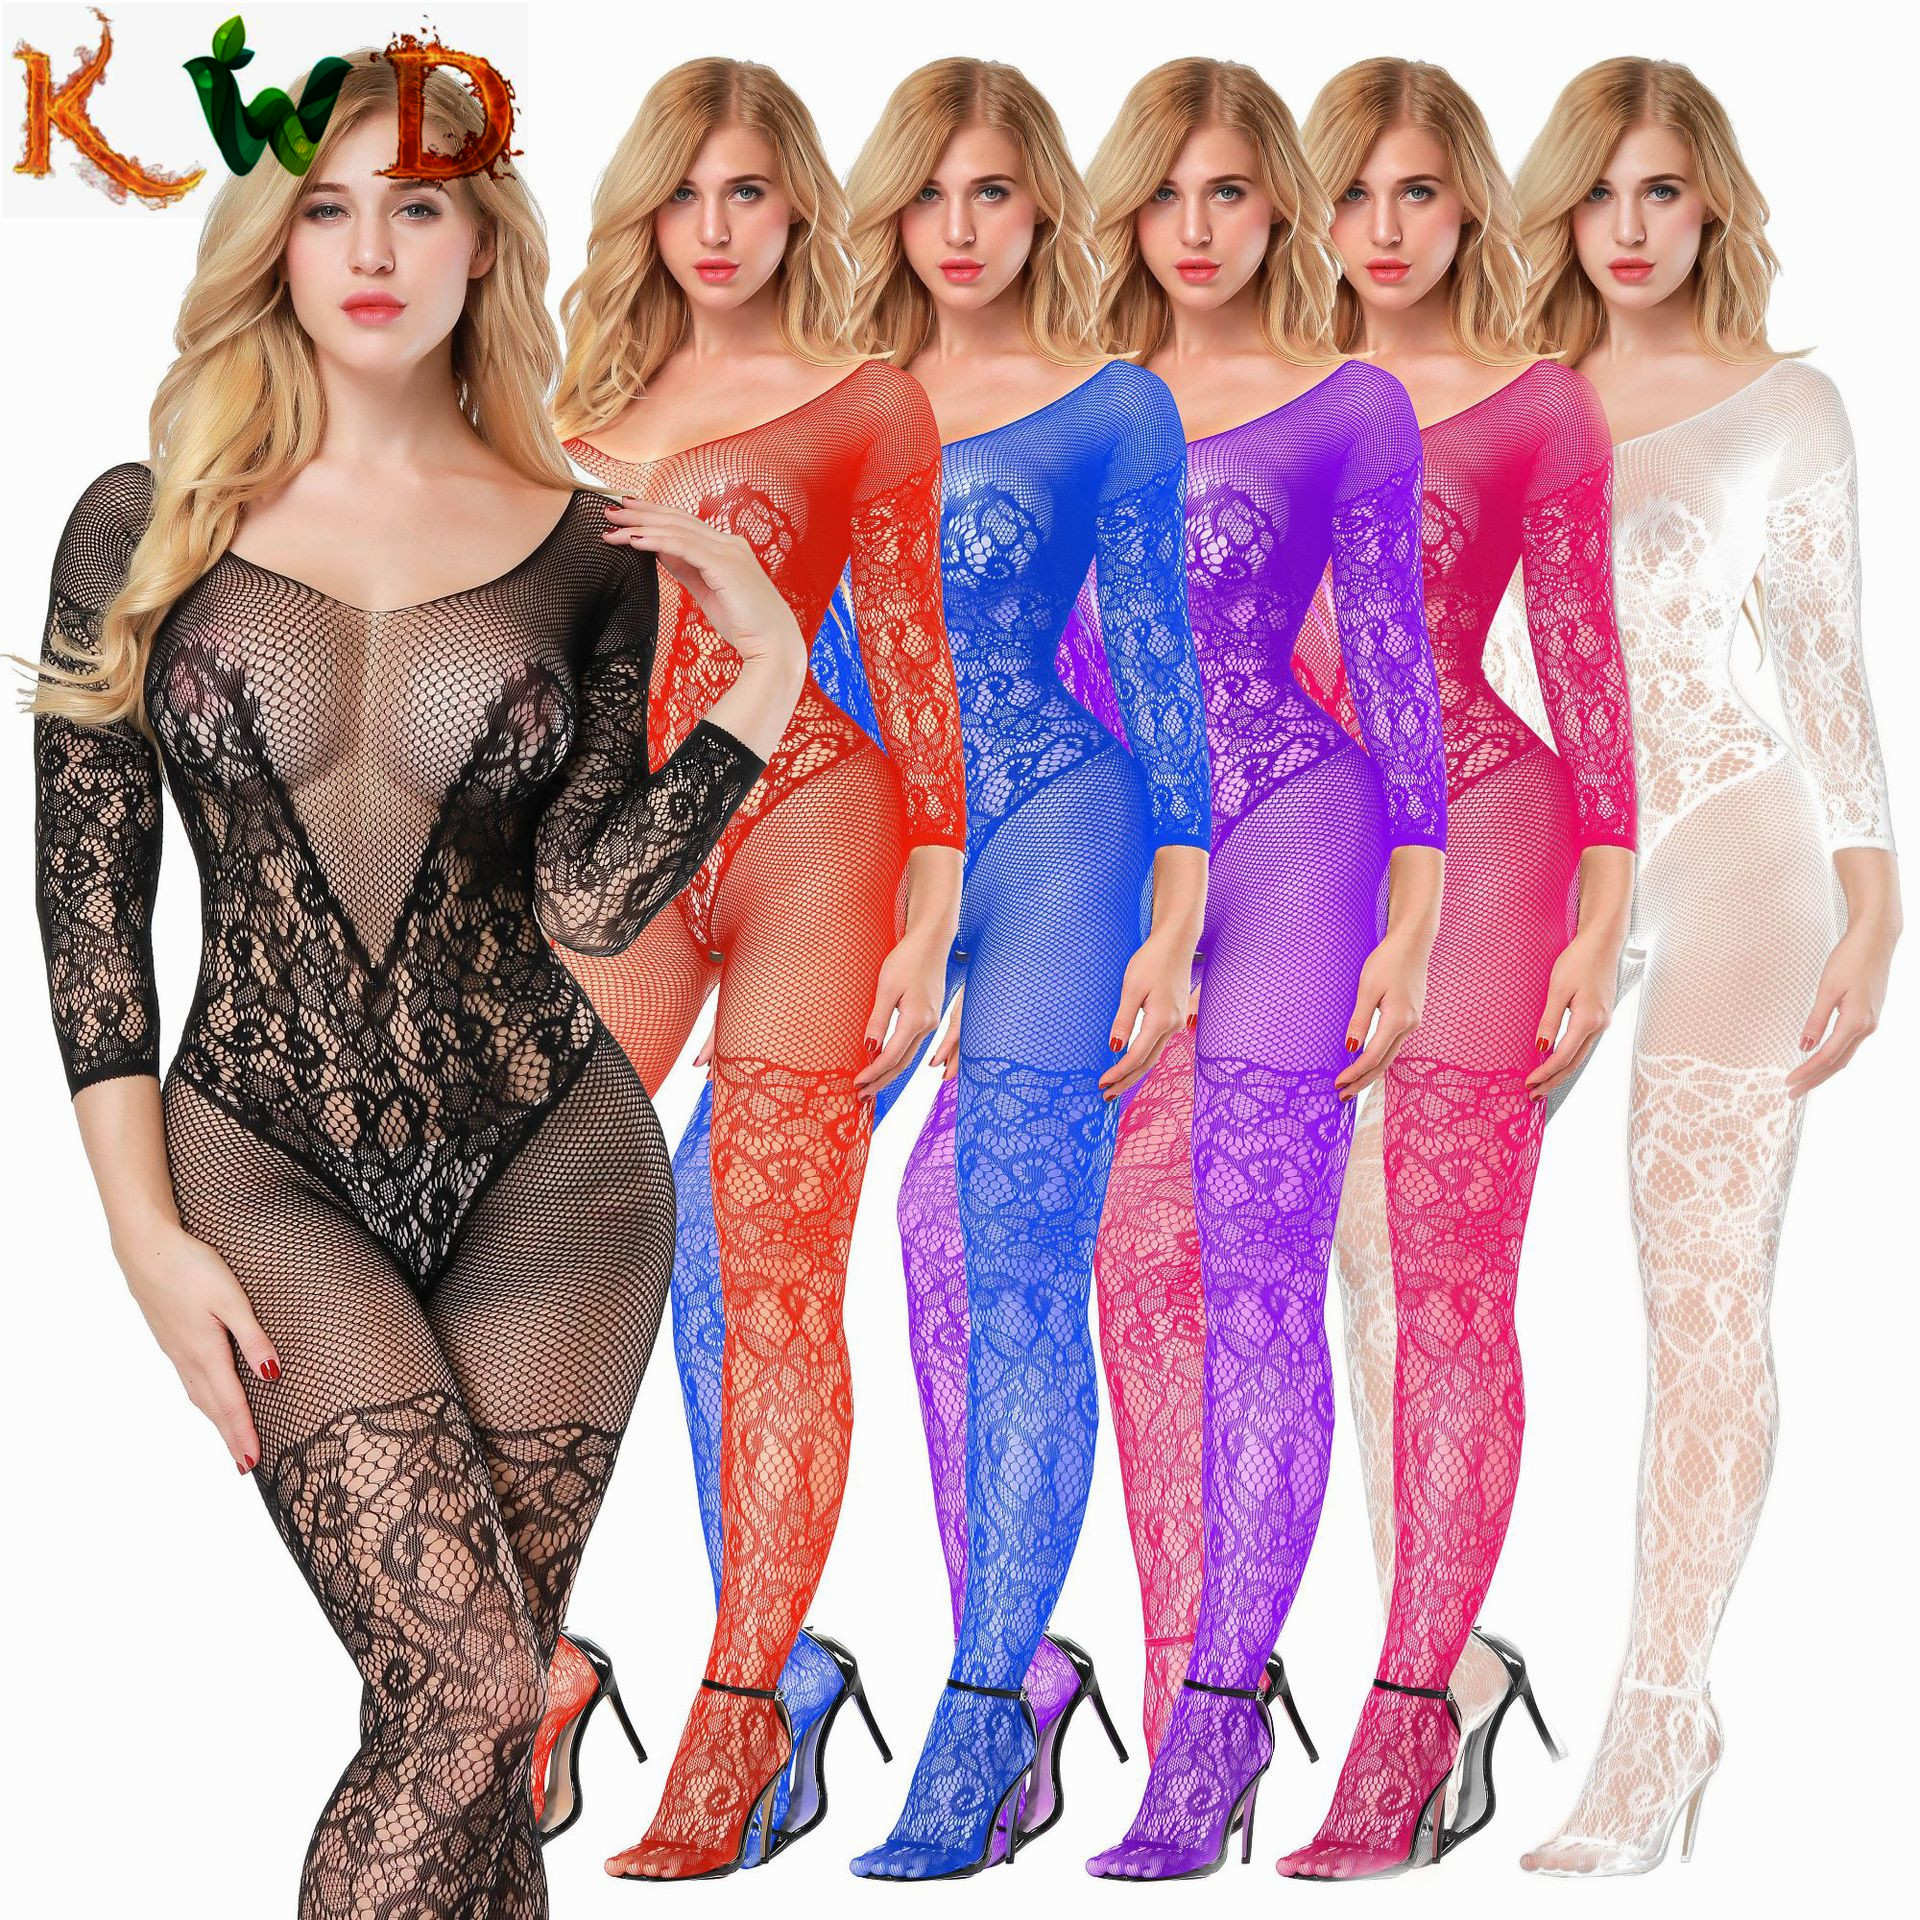 KWD Women Transparent Sexy Lingerie For Sexy Catsuit Sexy Costumes Erotic Underwear Hot Lingerie Erotic-lingerie